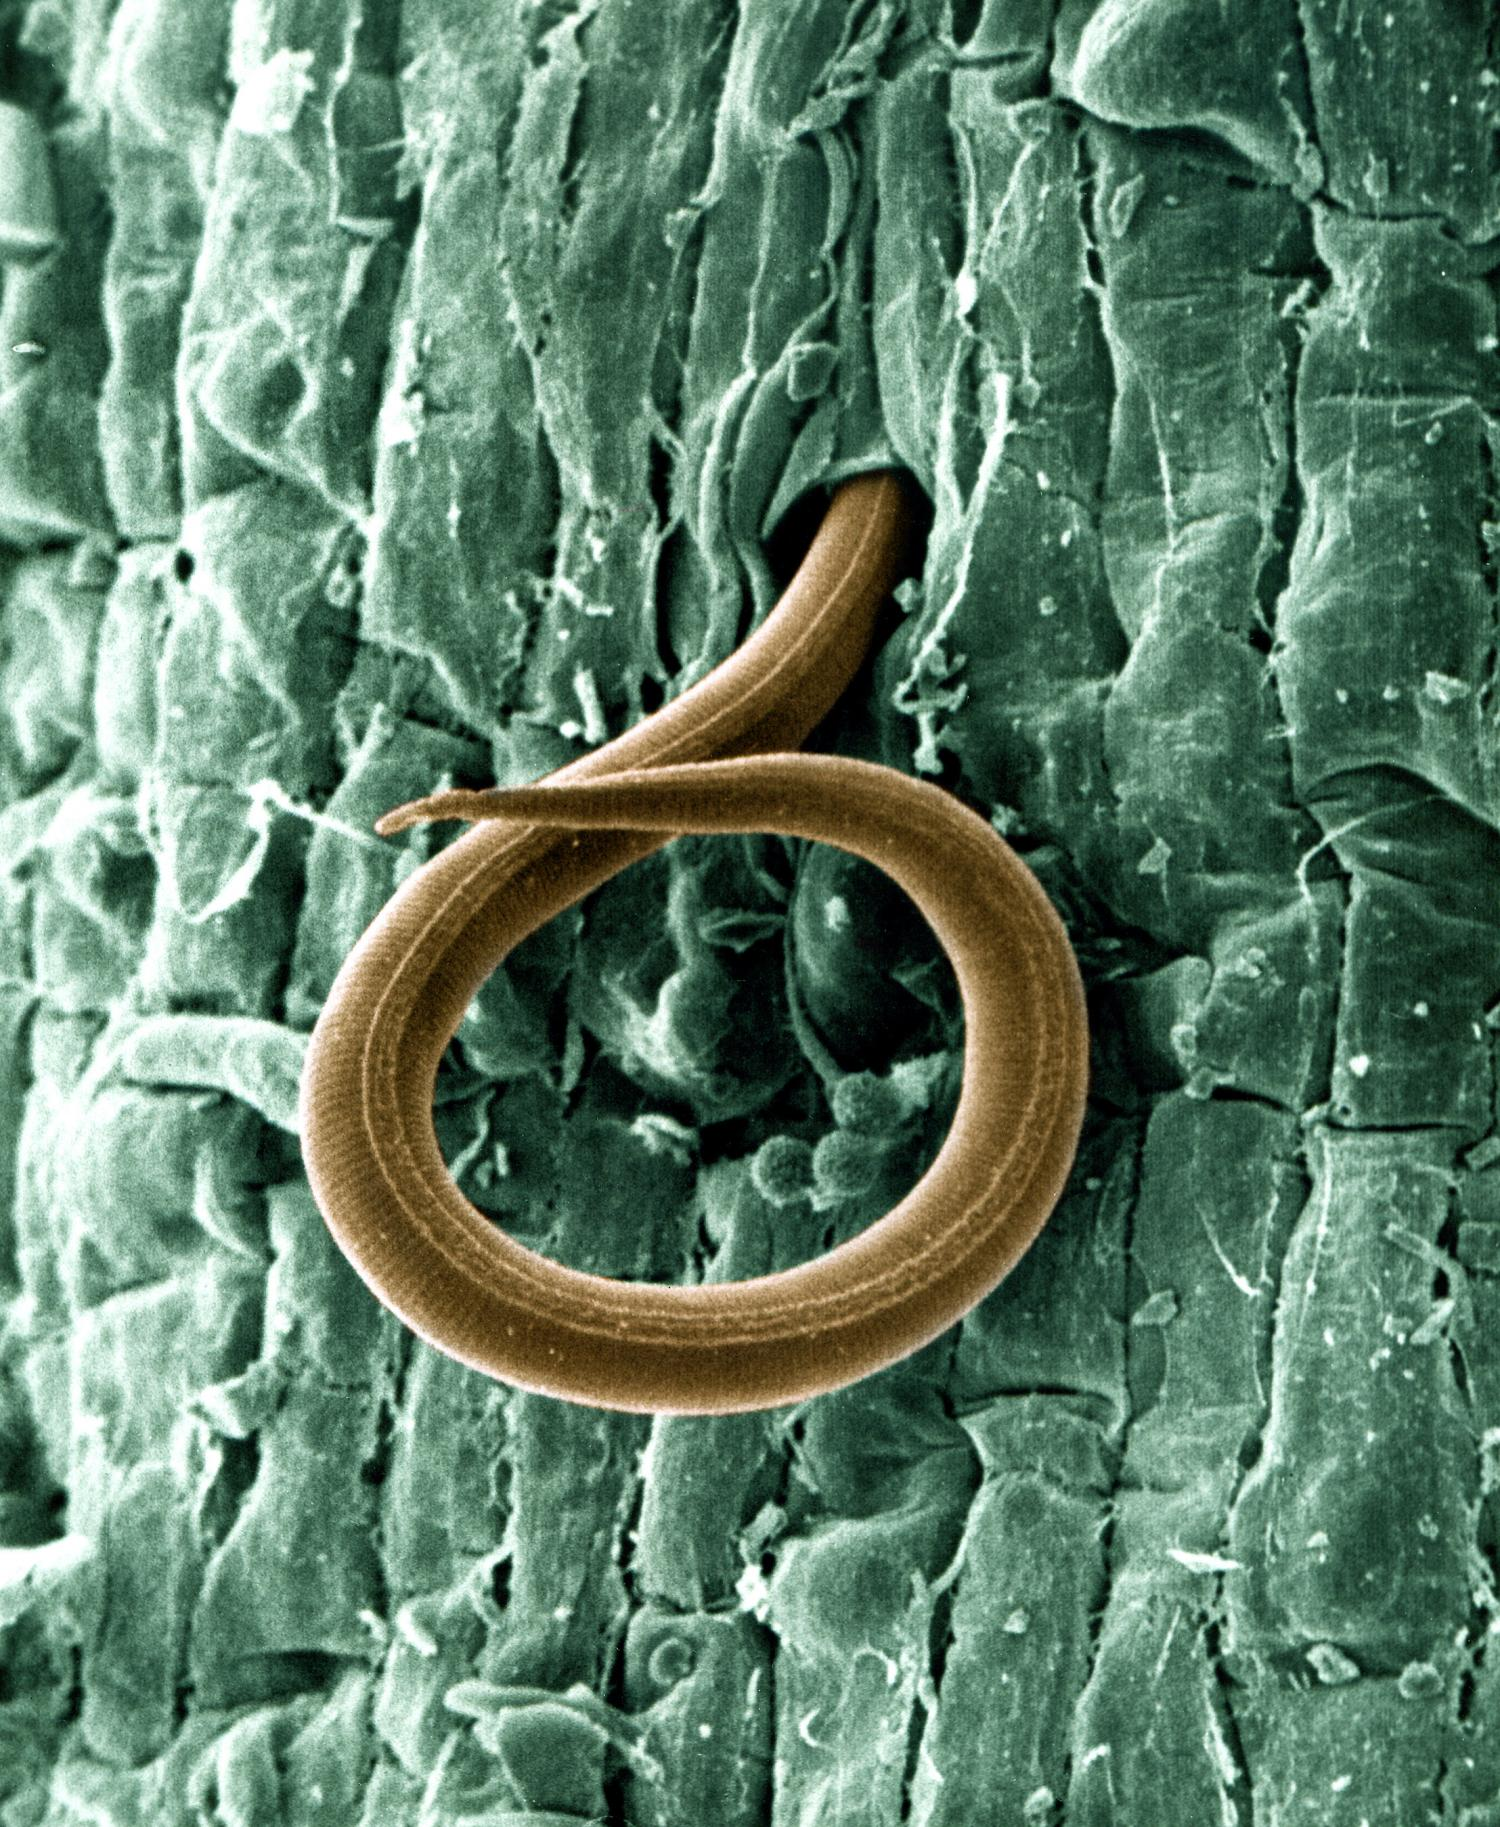 scientists discover new approach to managing parasitic roundworms